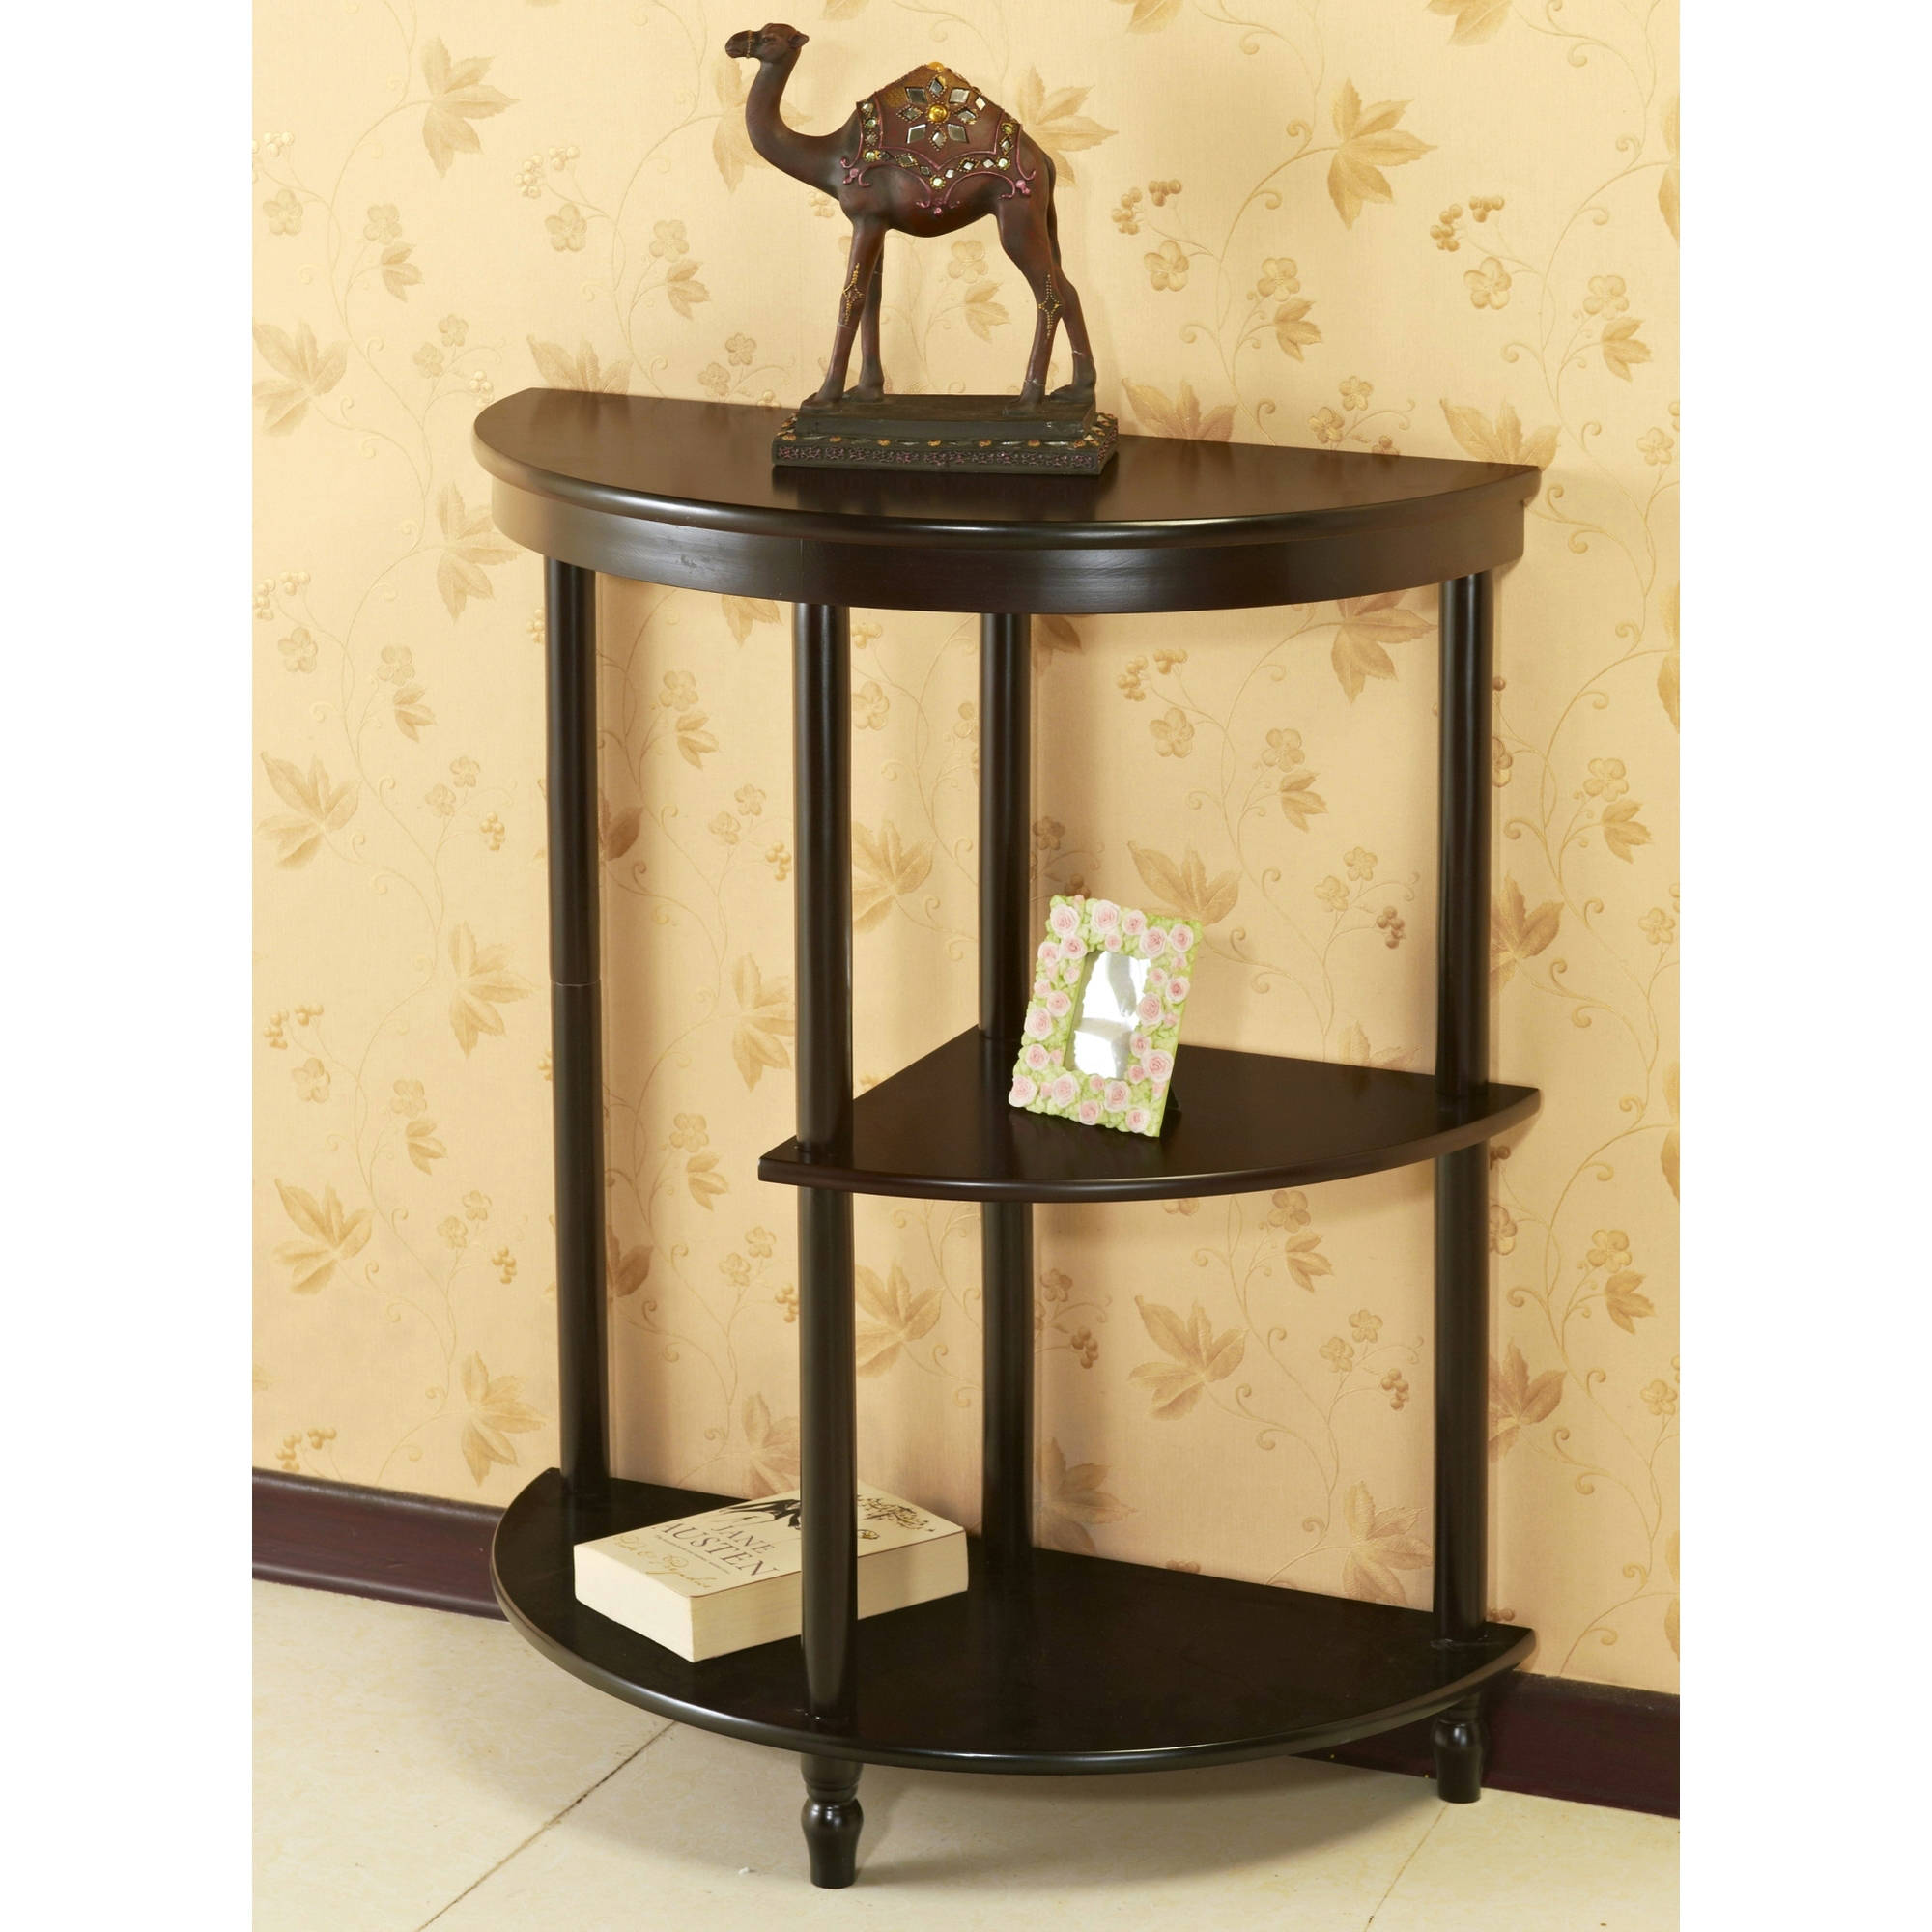 Winsome Wood Concord Half Moon Console Table W/ Drawer, Walnut   Walmart.com